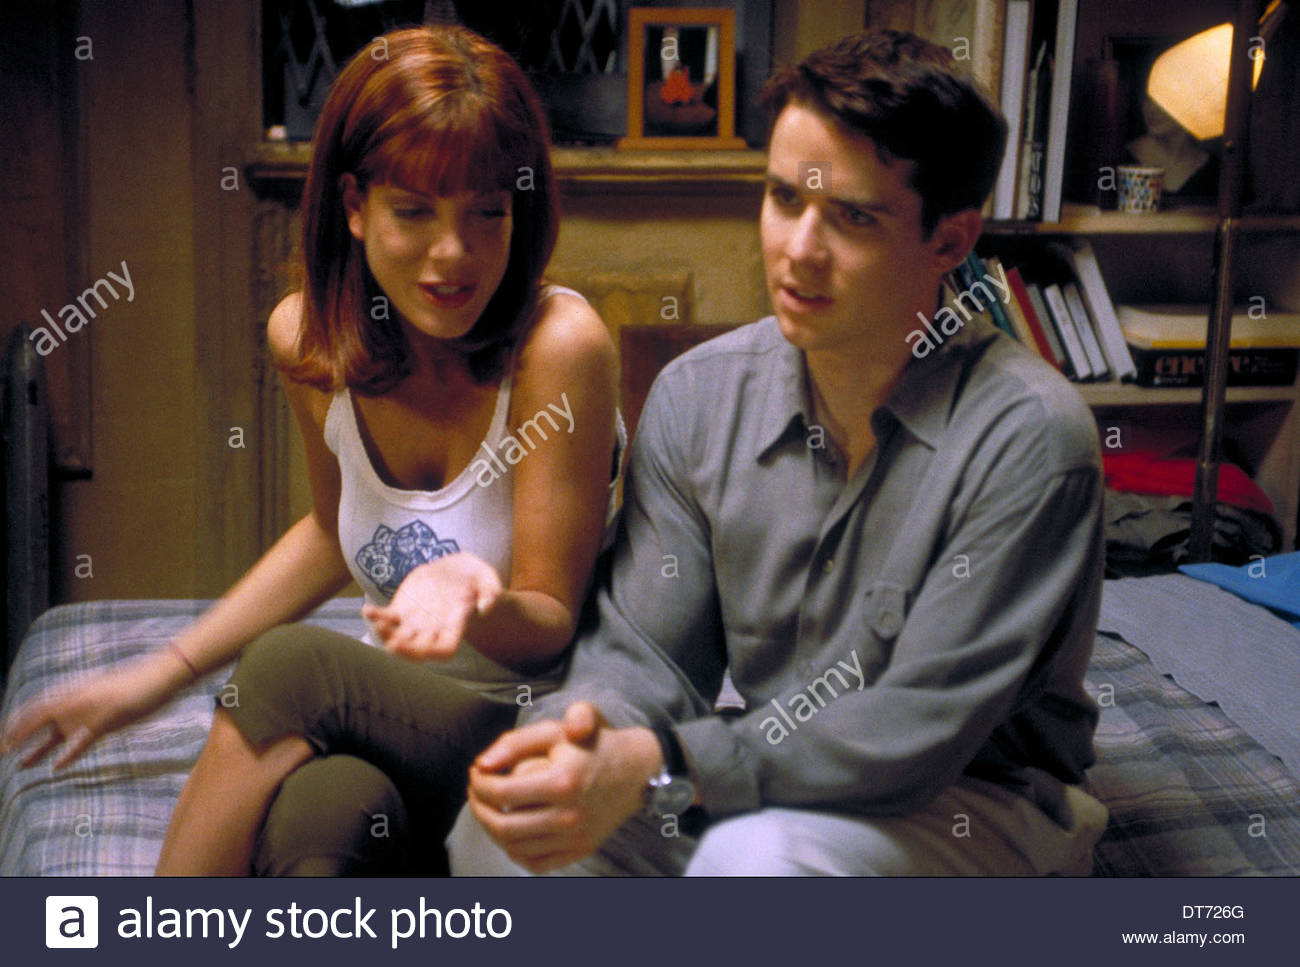 tori spelling amp christian campbell trick 1999 stock photo